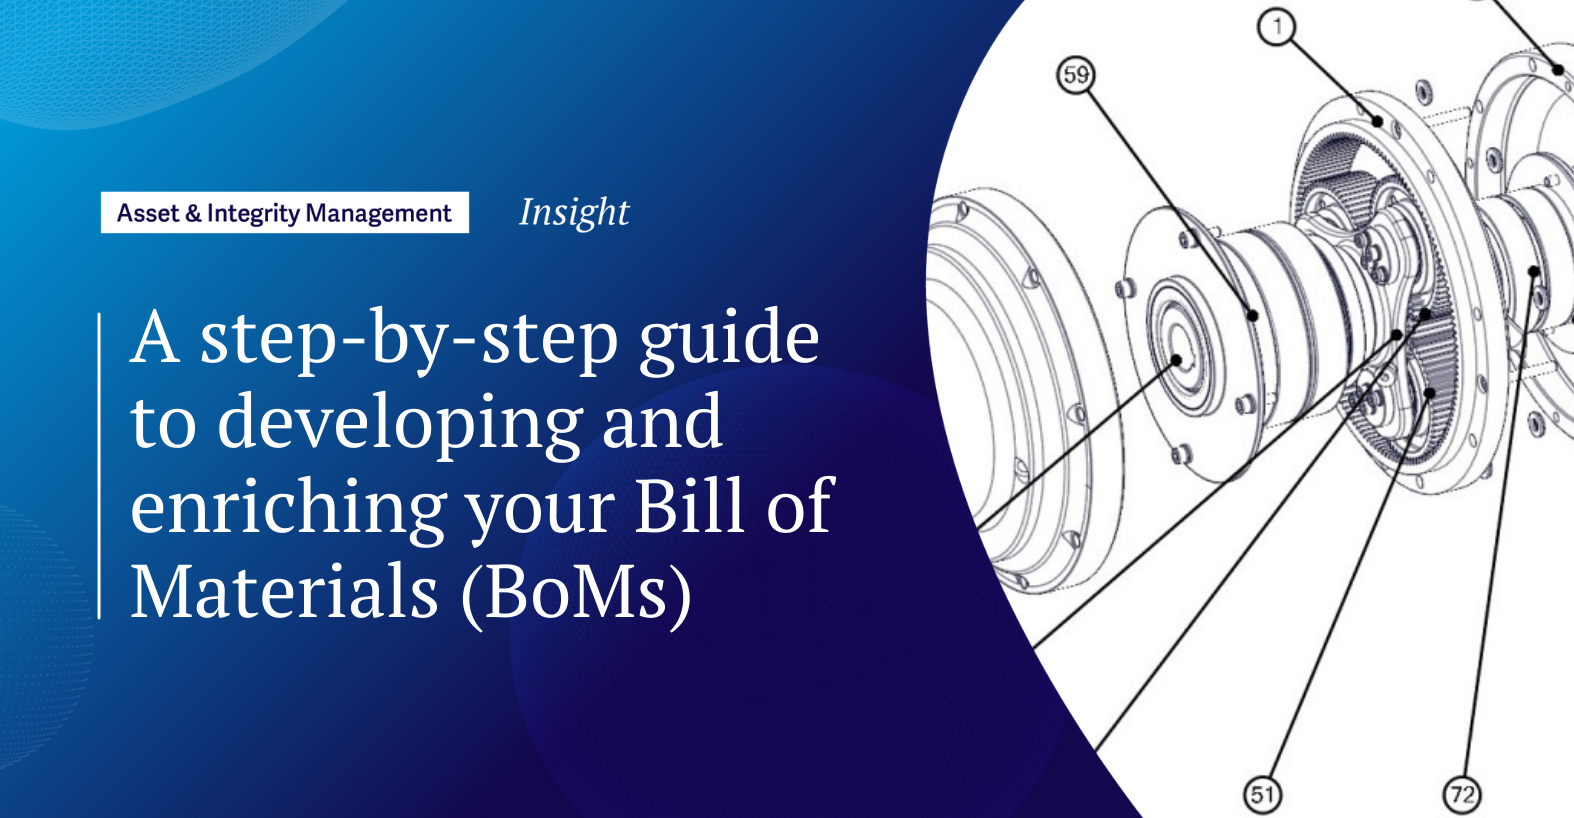 A step-by-step guide to developing and enriching your Bill of Materials (BoMs)